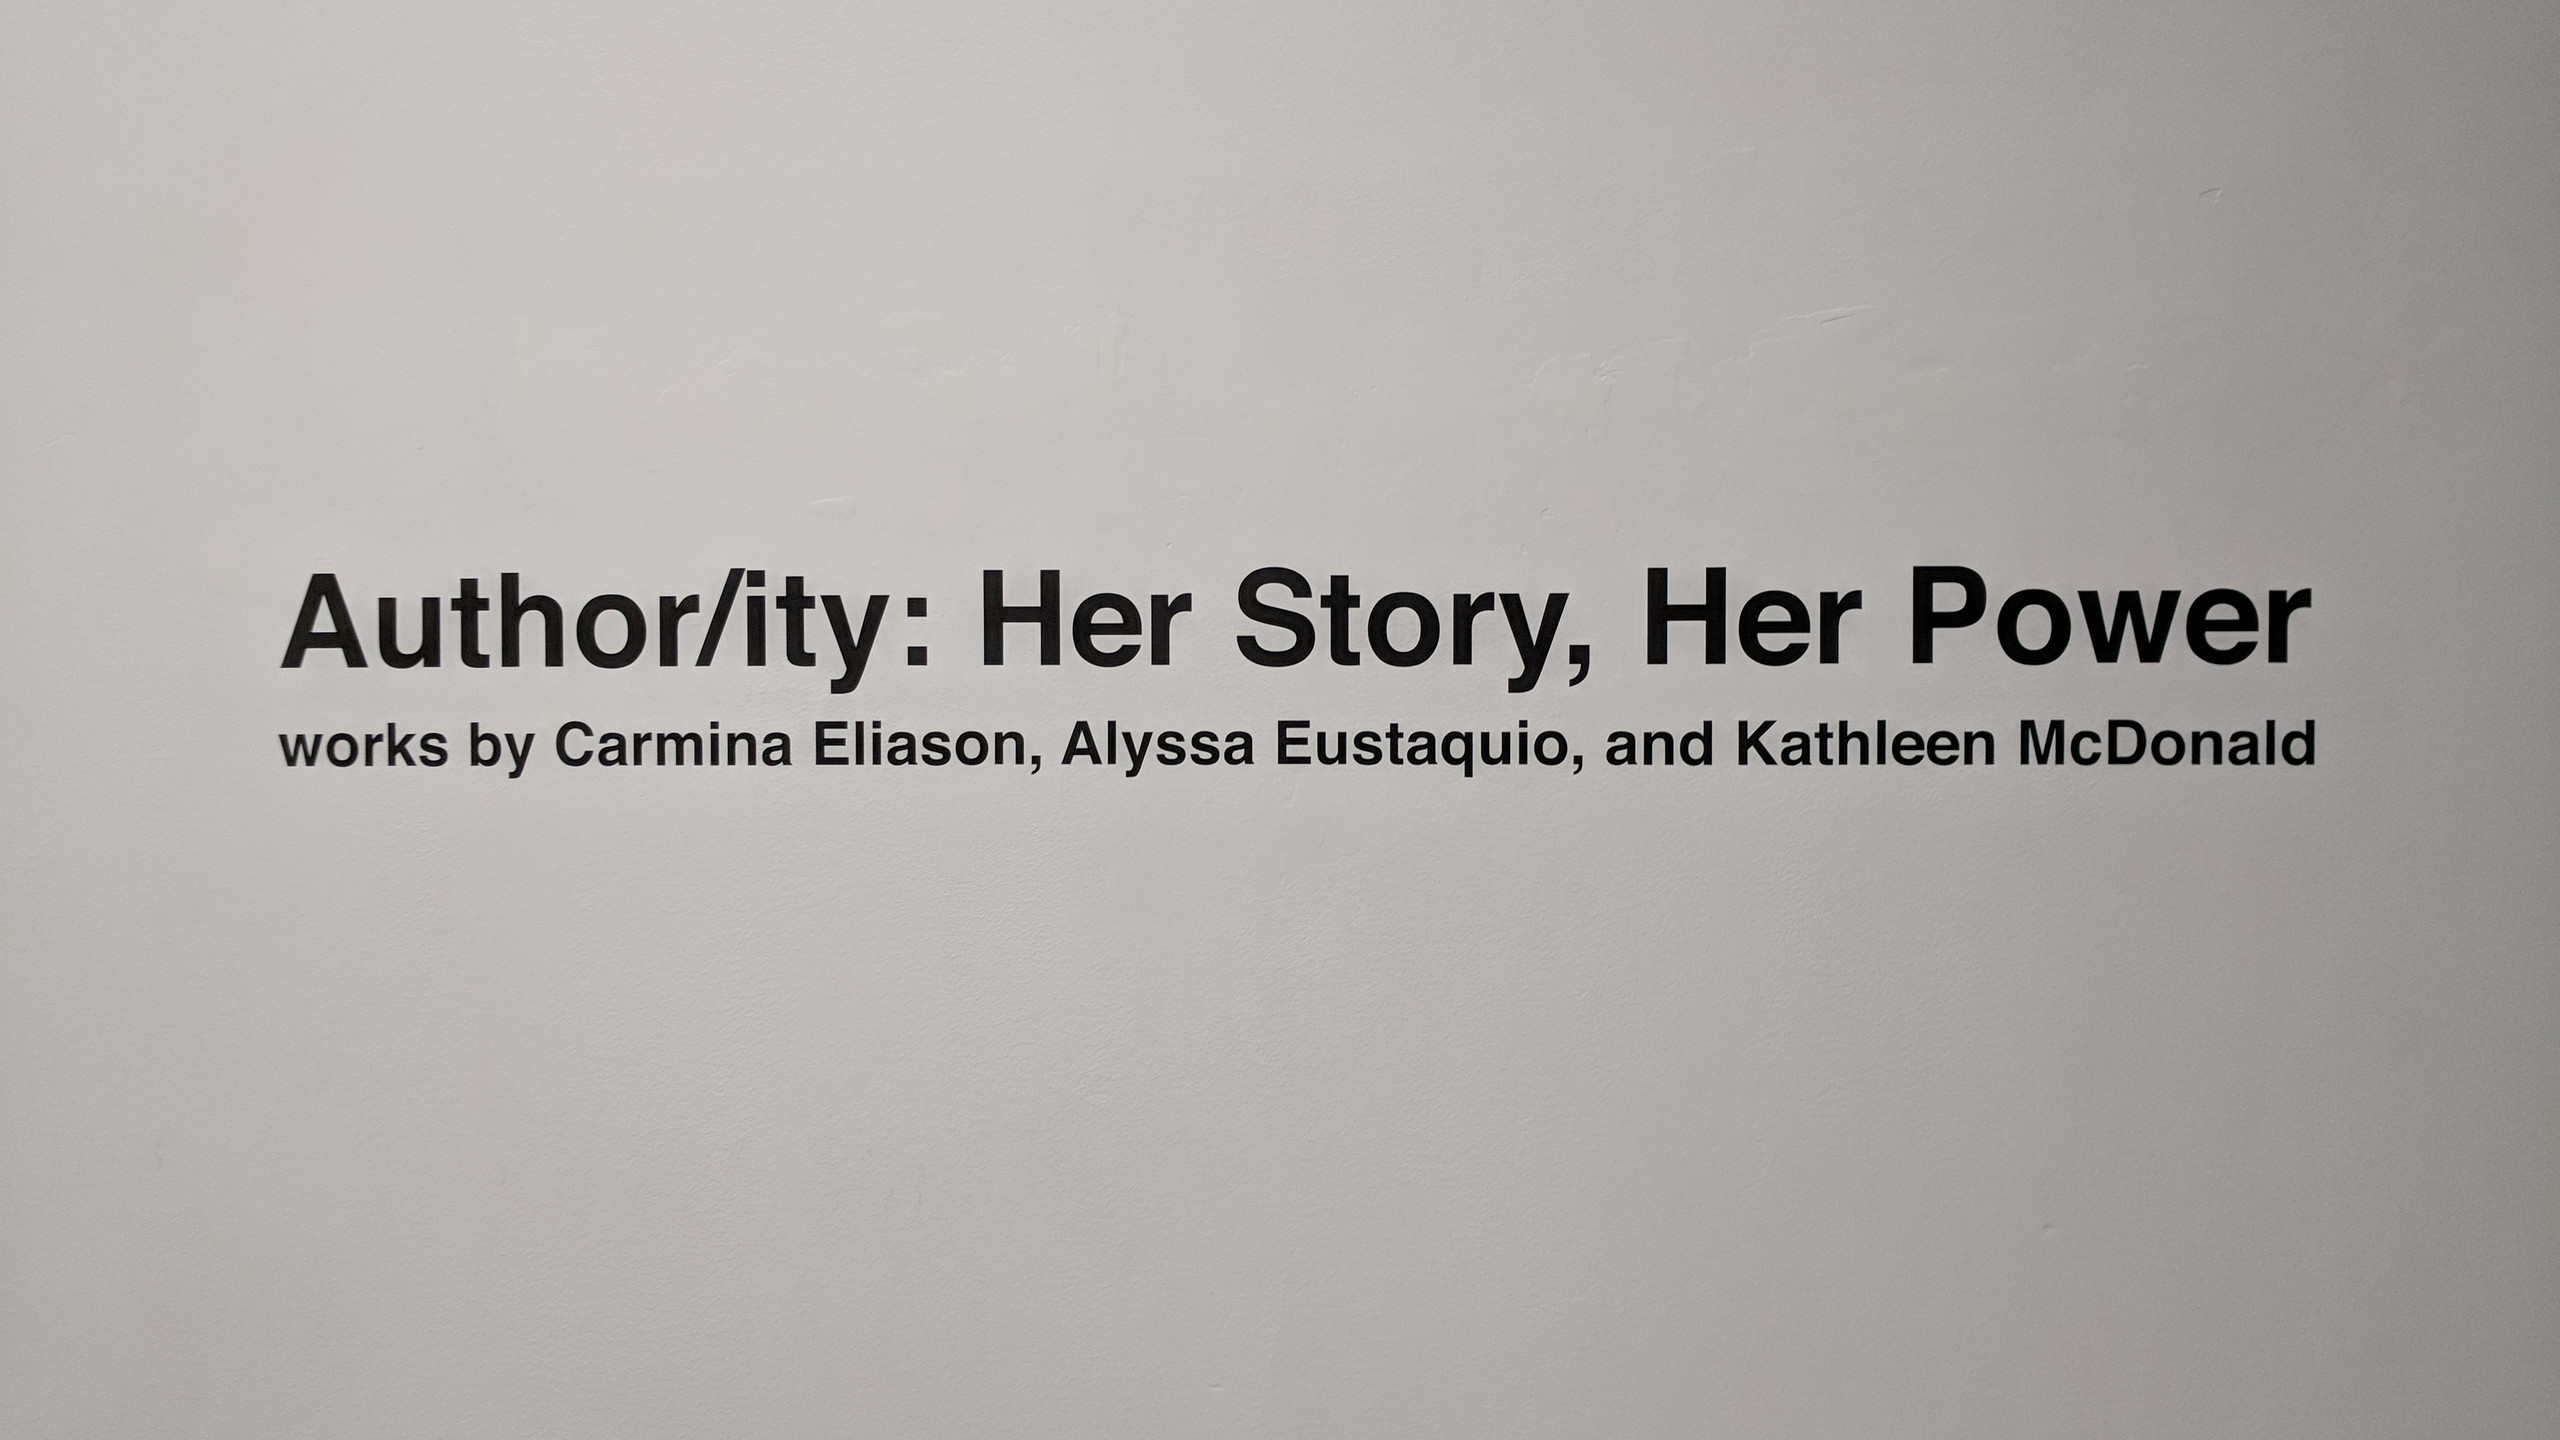 Author/ity: Her Story, Her Power